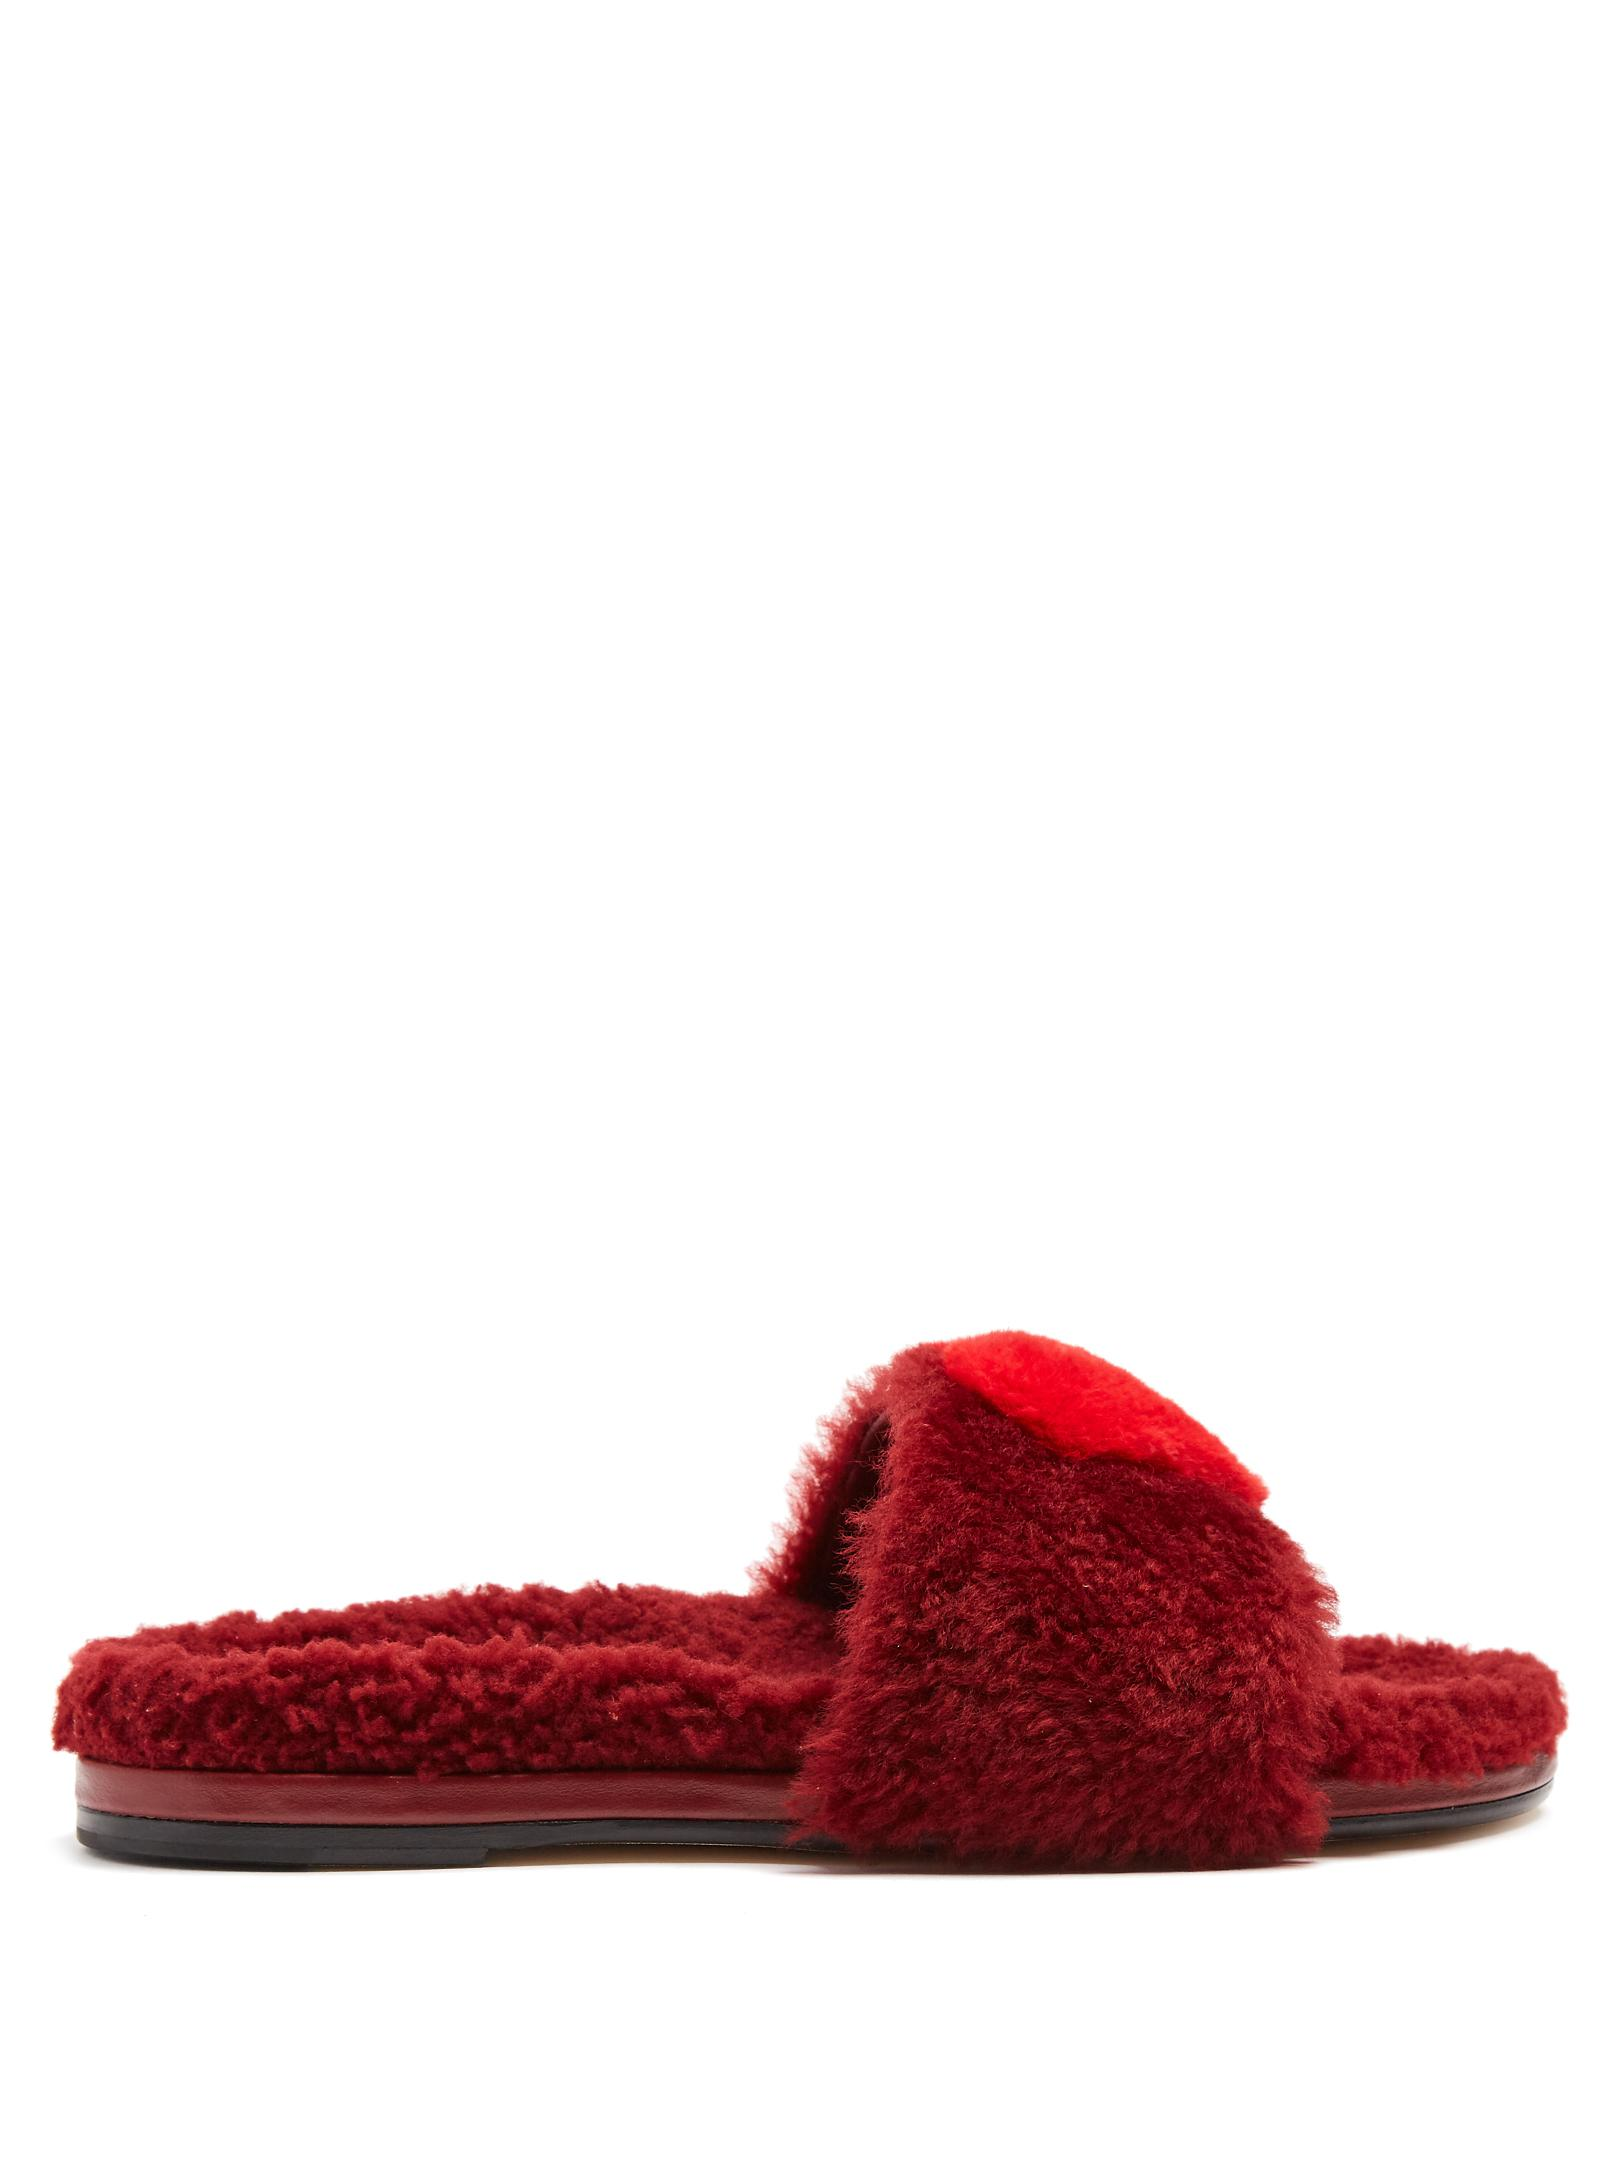 Anya Hindmarch Flat Shearling Heart Slides Cheap Explore Very Cheap Price Pay With Visa For Sale Outlet Low Shipping Free Shipping Best 6mnlk0eIDe